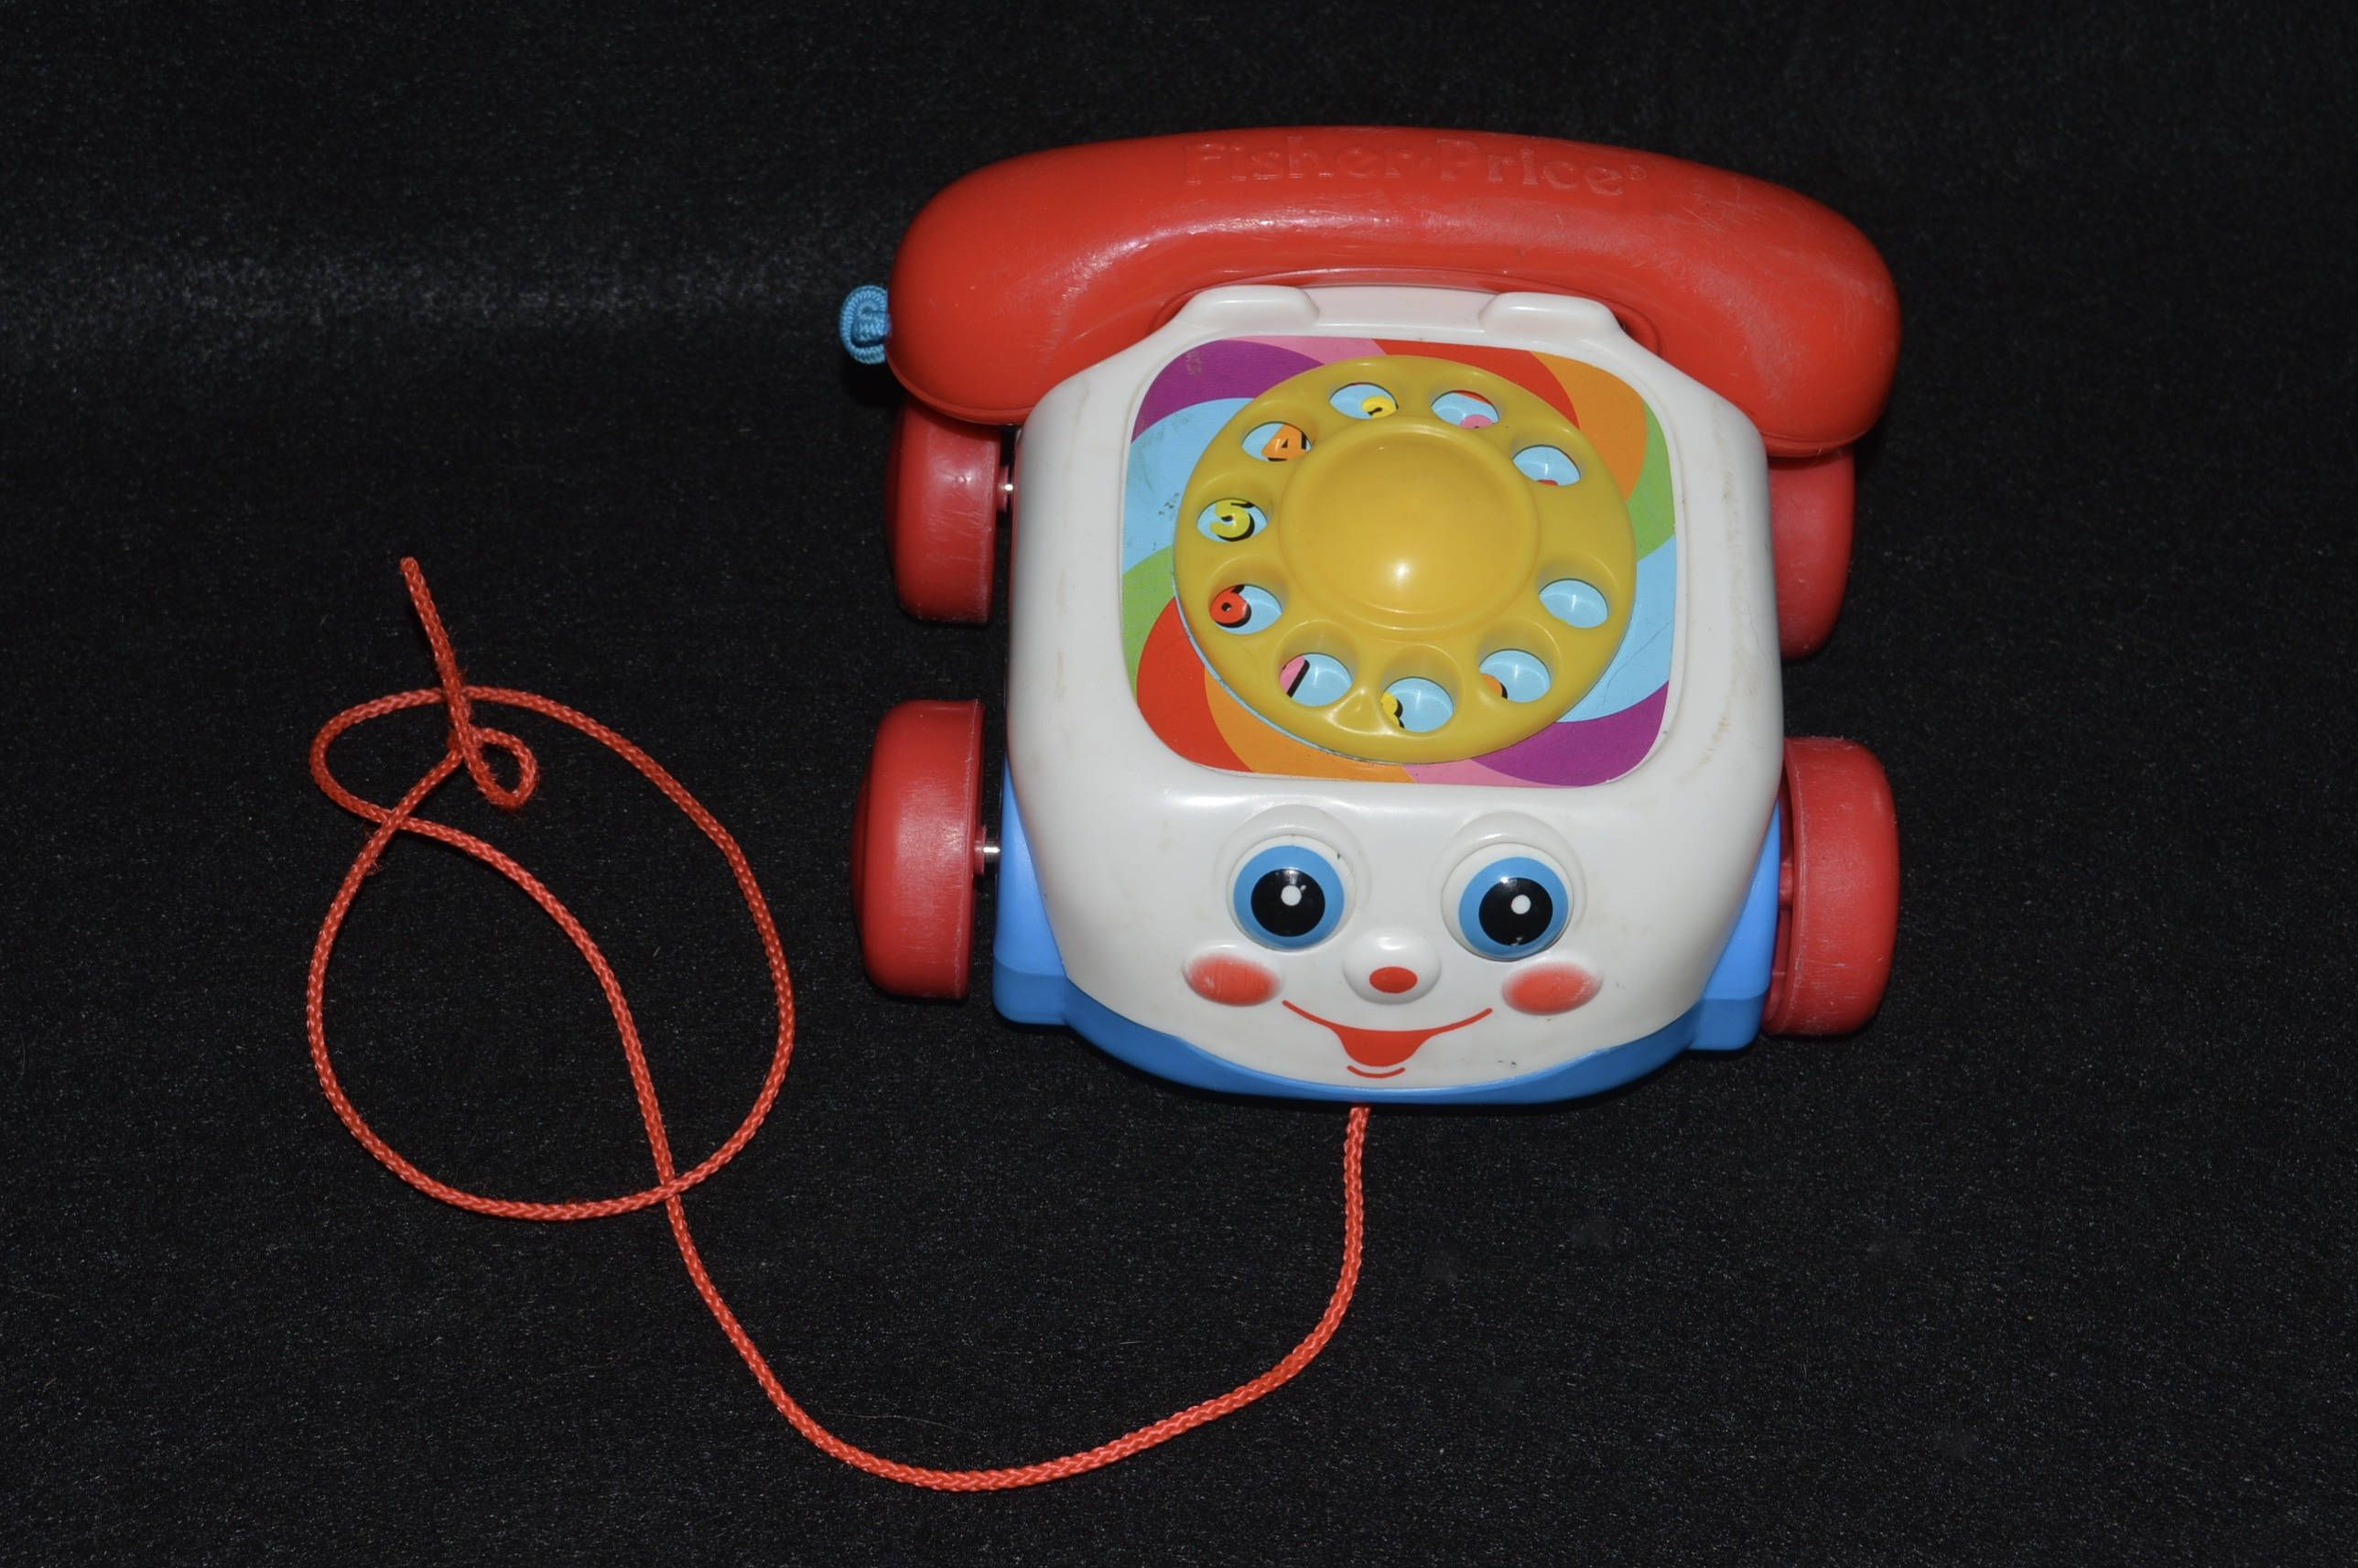 small resolution of toy phone fisher price chatter box phone telephone toy child s pull toy vintage toys toy rotary phone wheeled phone phone toy by